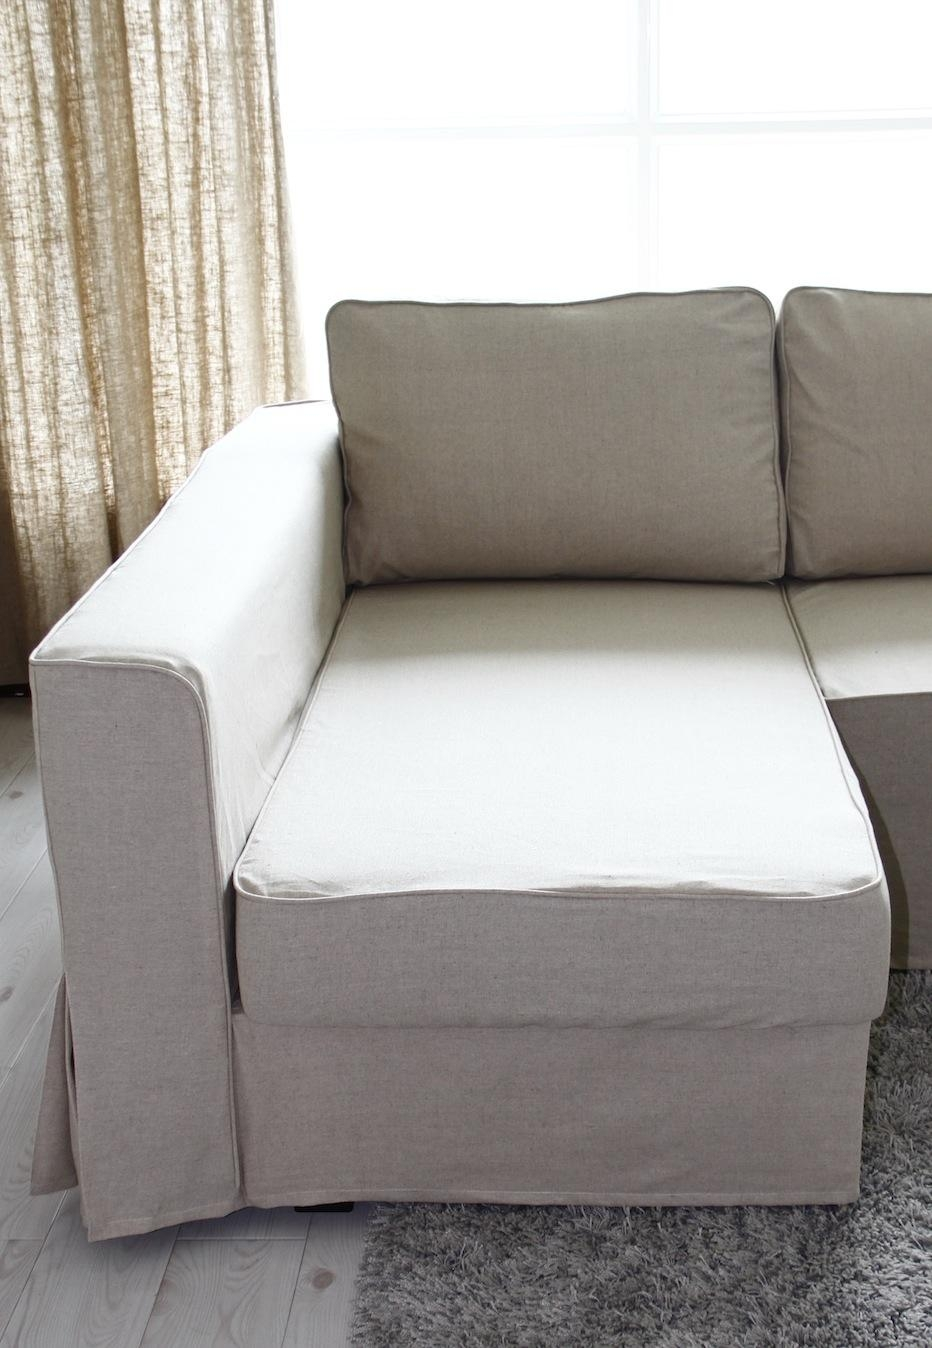 Furniture: Protect Your Lovely Furniture With Sure Fit Slipcovers Inside Sofa Armchair Covers (View 20 of 20)